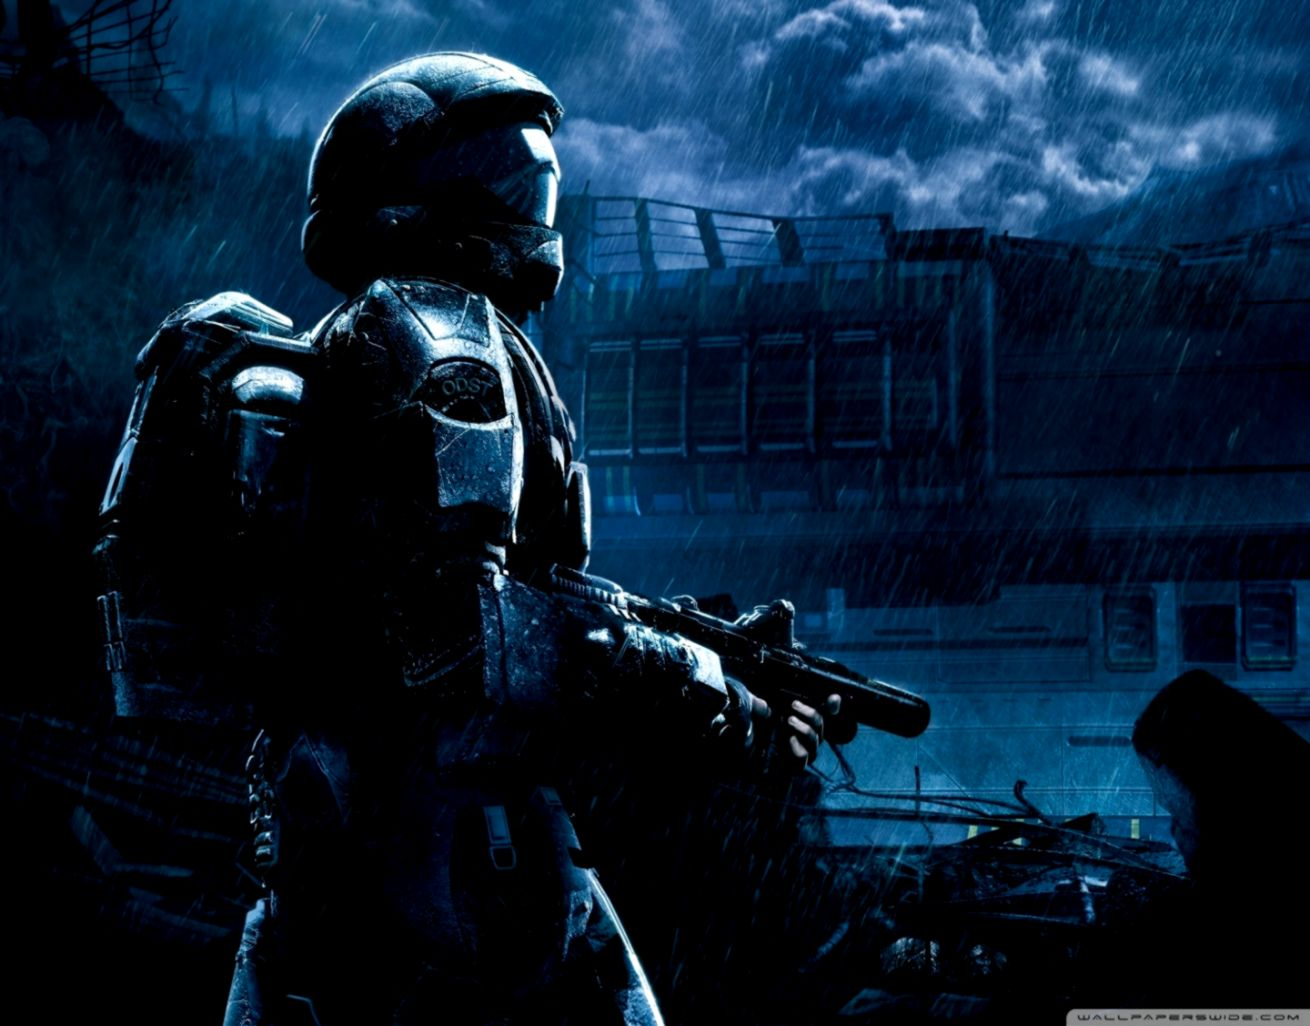 Halo 3 Odst Wallpaper Wallpapers Abstract